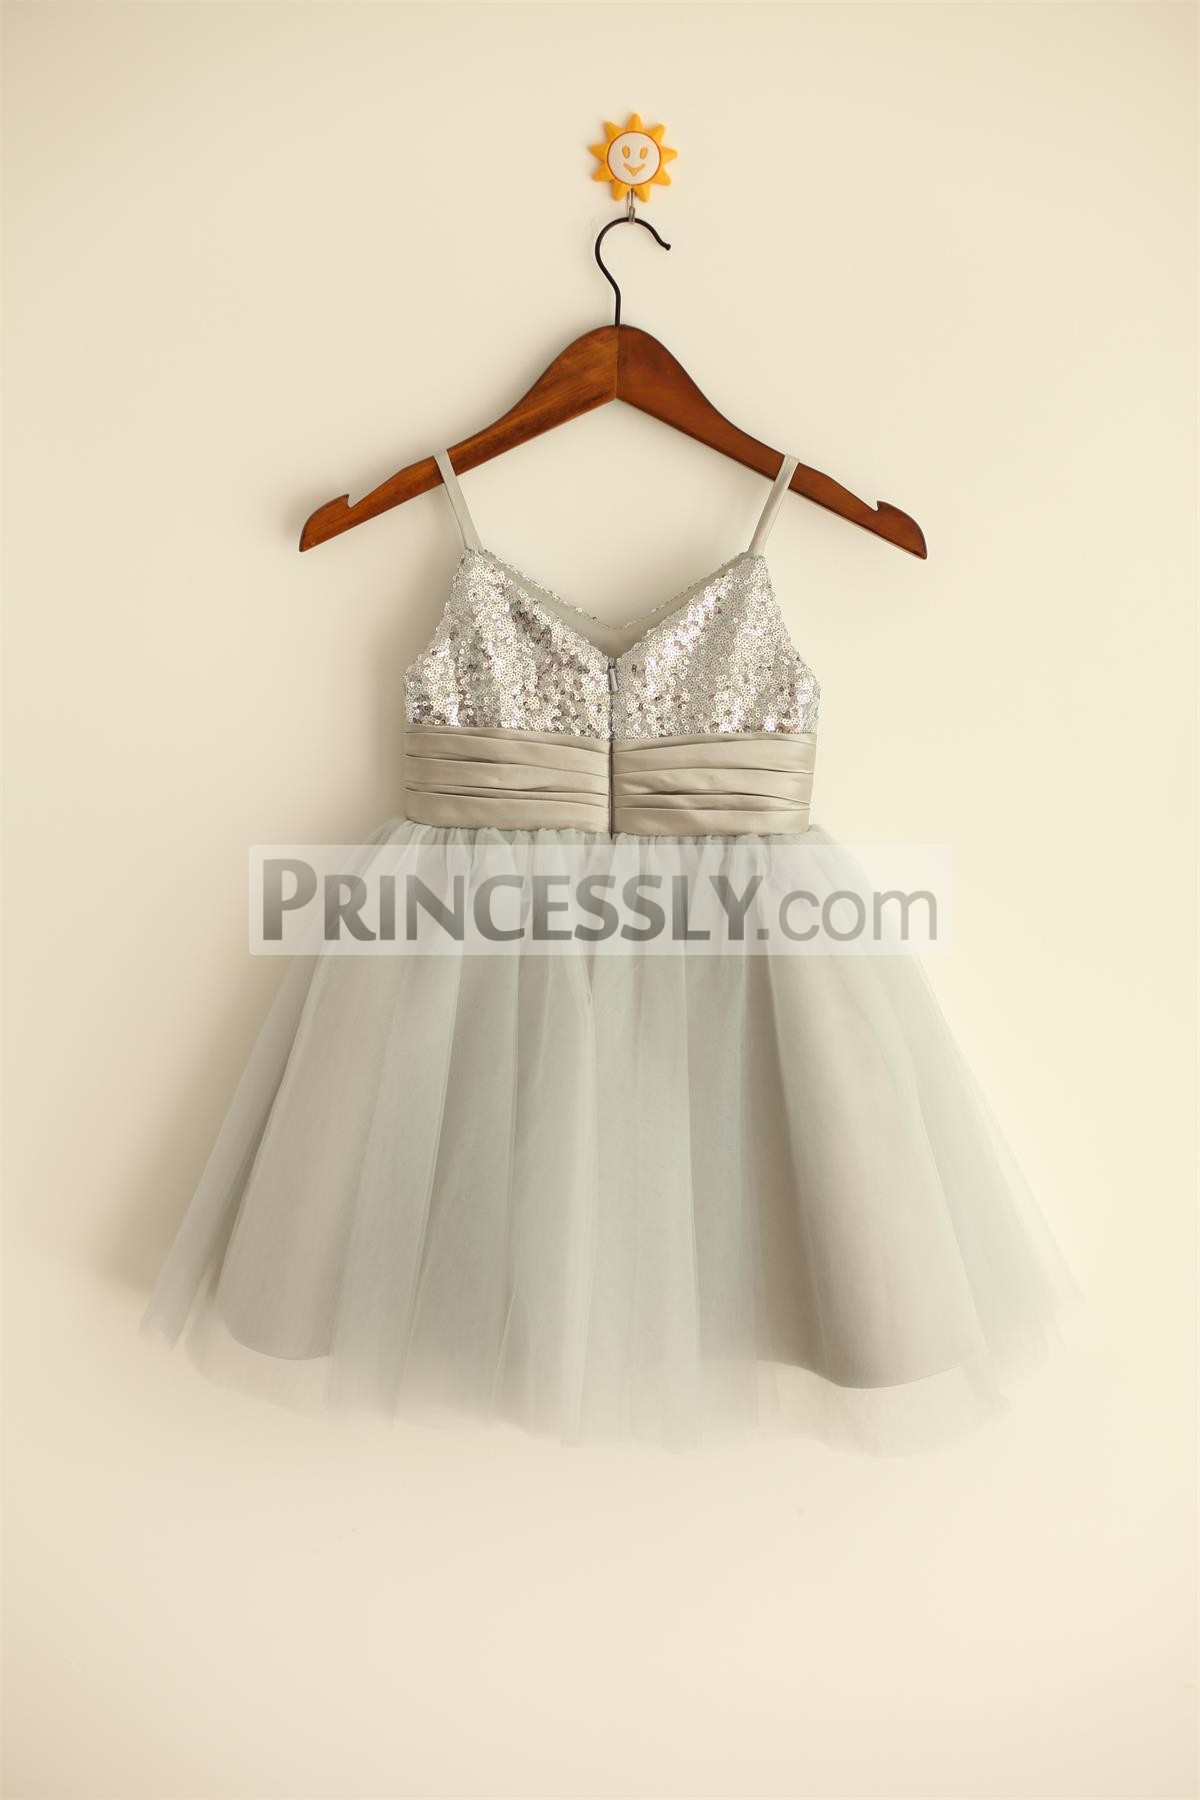 V neck silver sequins gray tulle wedding baby girl dress with satin waistband